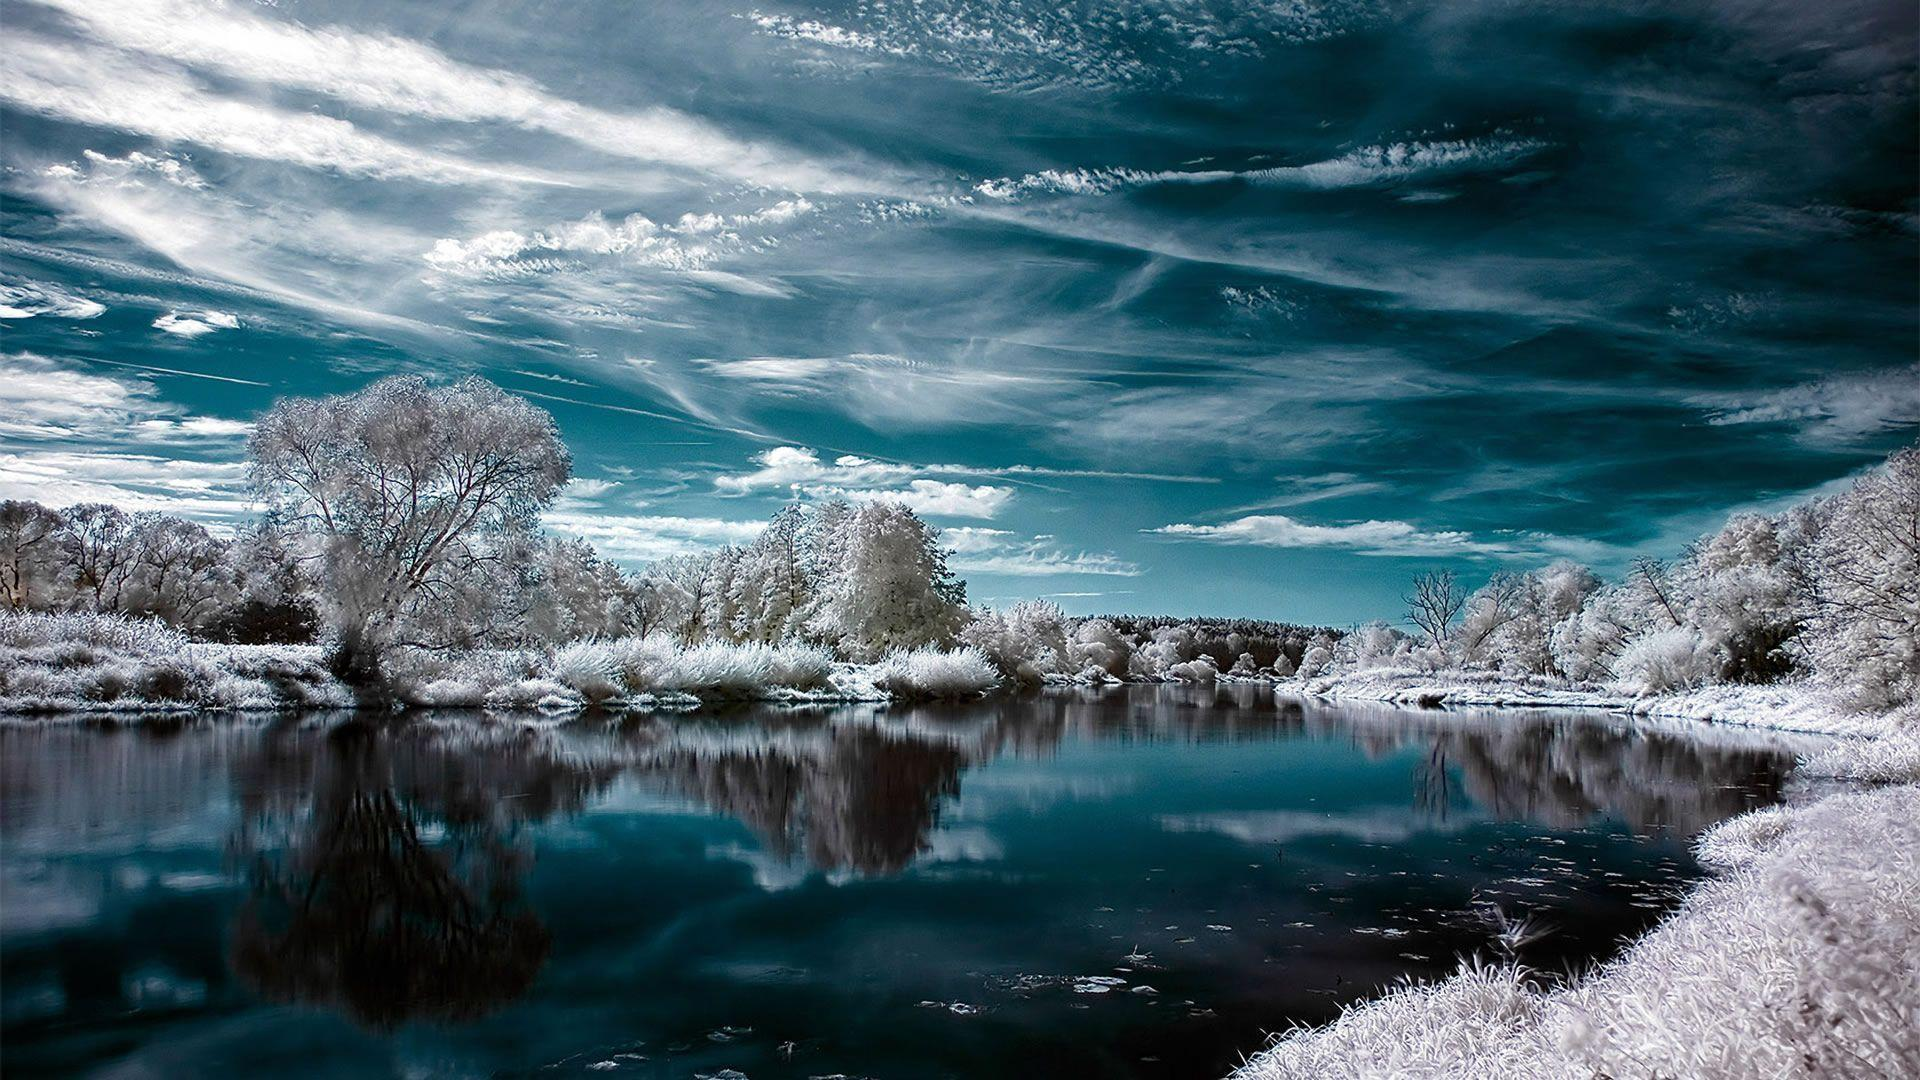 Winter Wallpaper 53 Backgrounds | Wallruru.